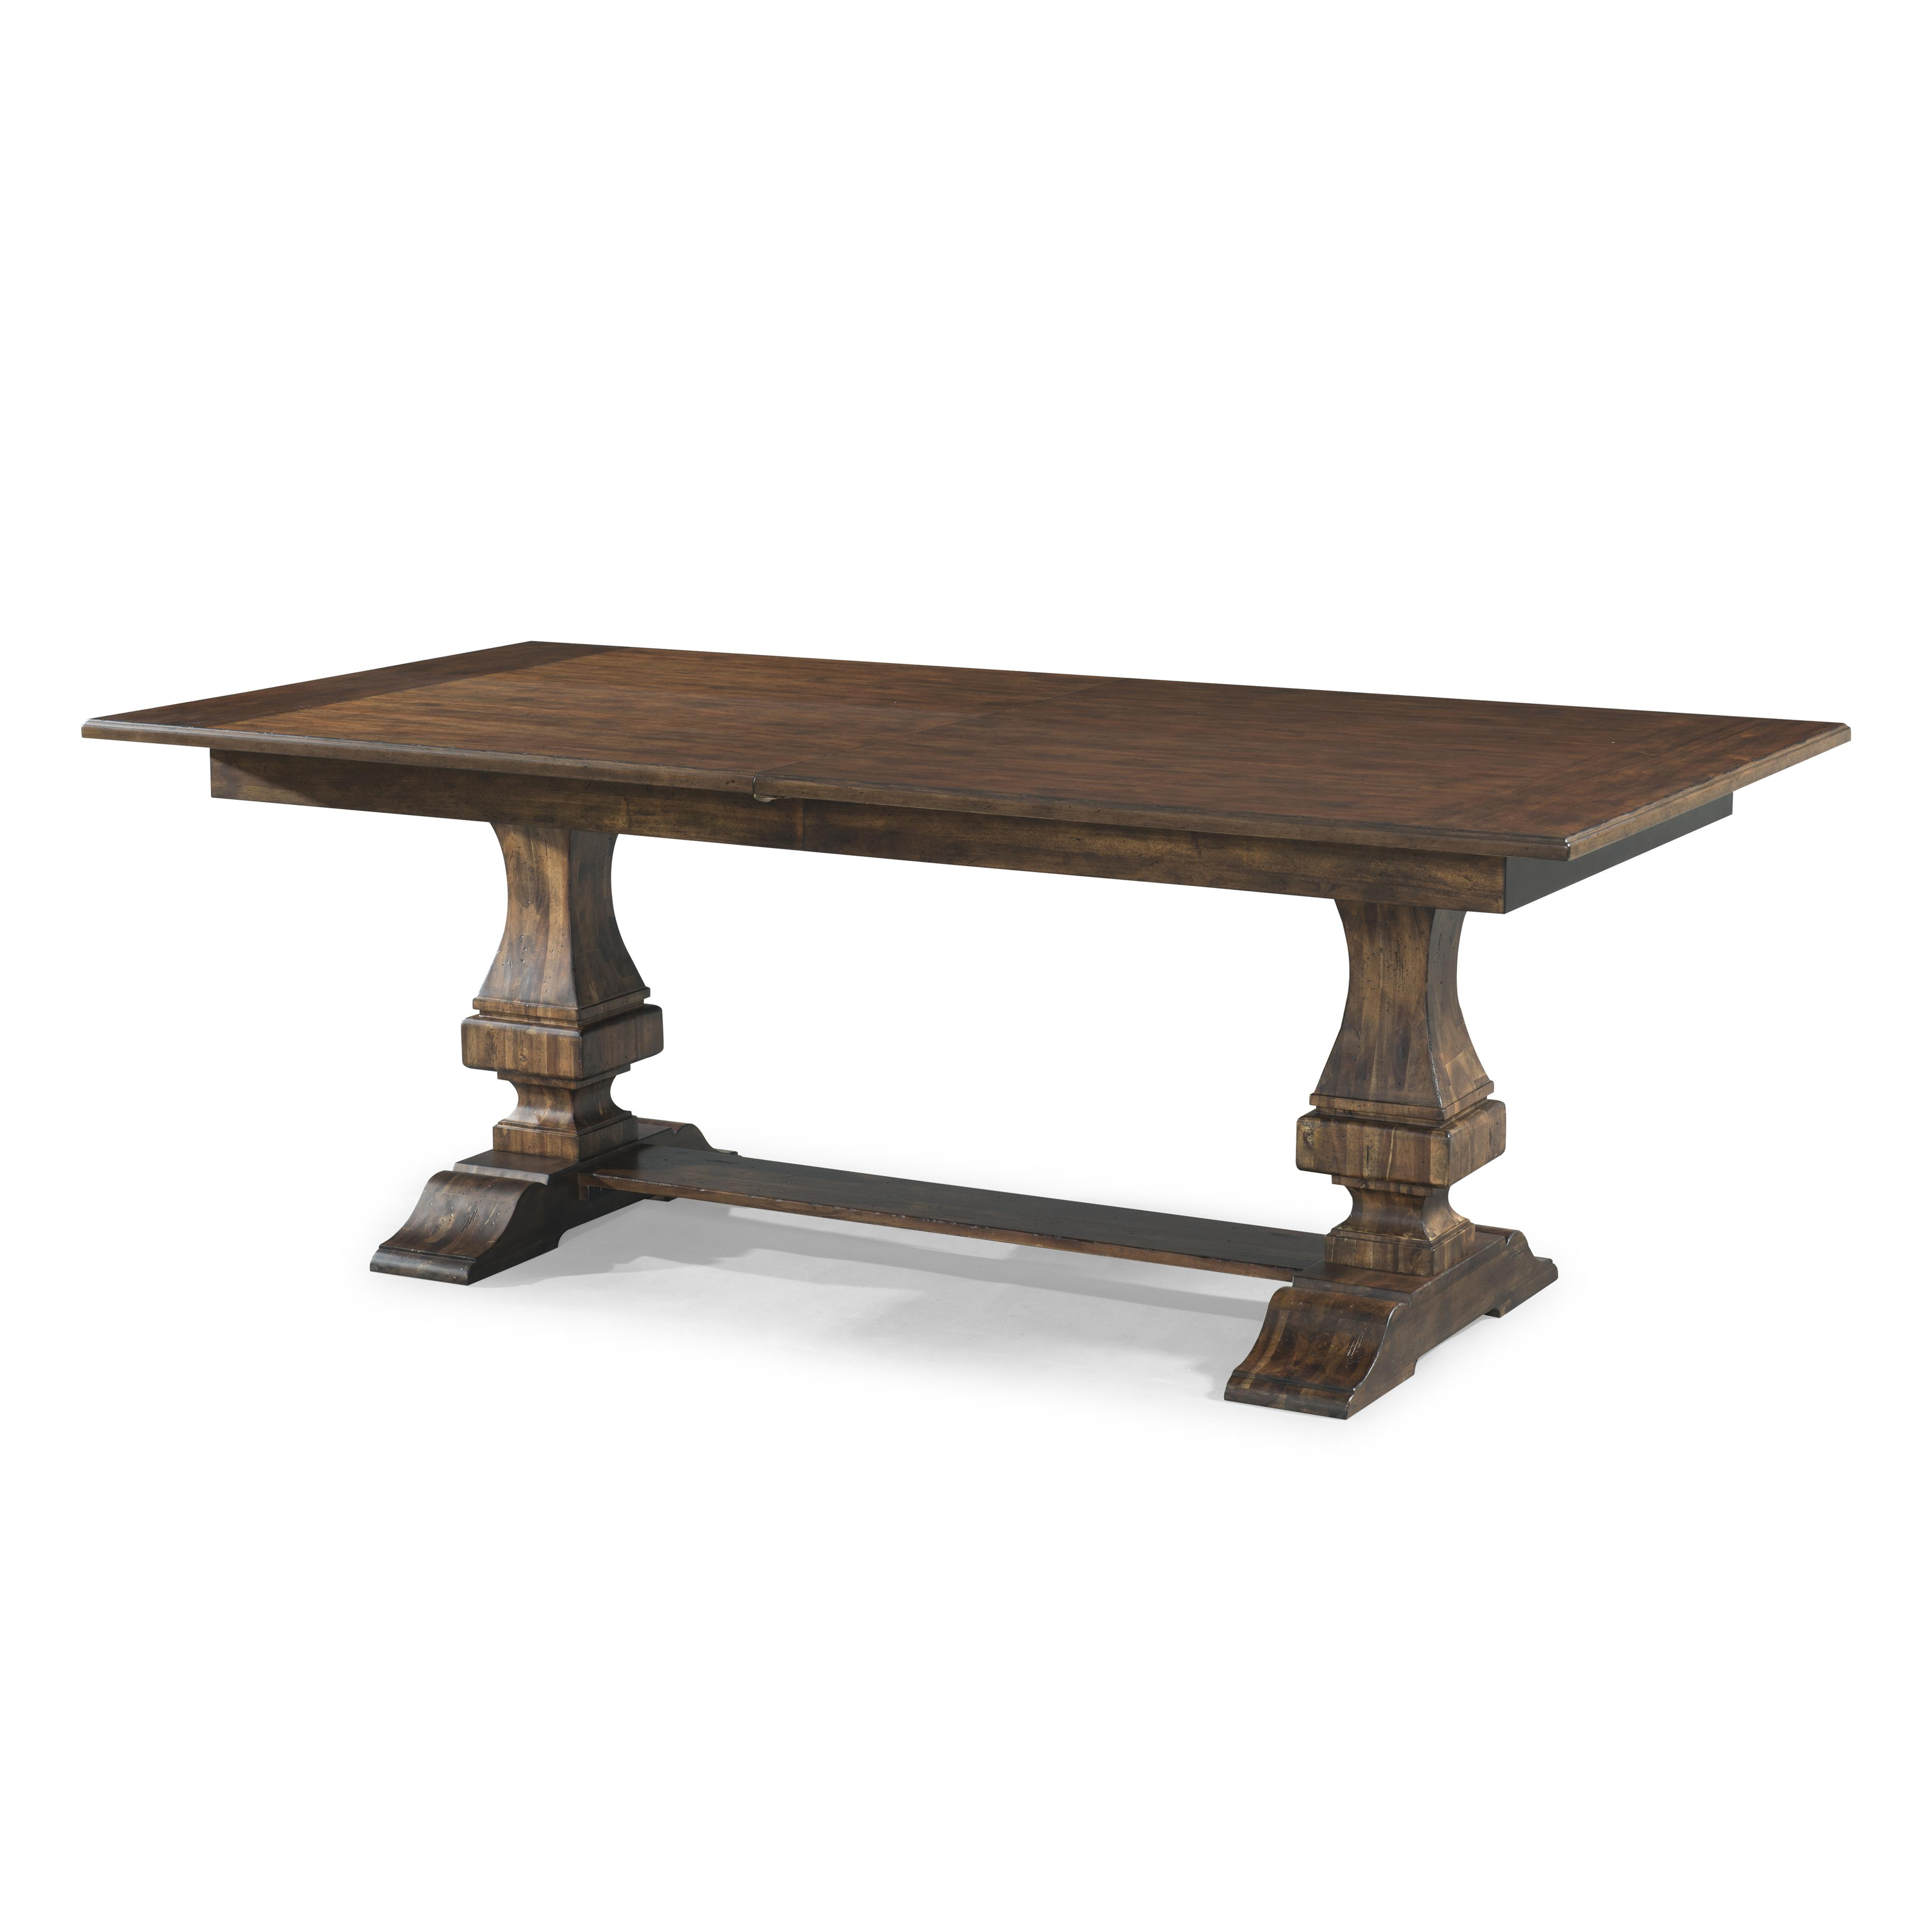 Trishas Trestle Table with 18 Inch Leaf by Trisha  : products2Ftrishayearwoodhomecollectionbyklaussner2Fcolor2Ftrisha20yearwood20home20 20120279175920 102t20drtt2Bdrtb b from www.wolffurniture.com size 4000 x 4000 jpeg 451kB